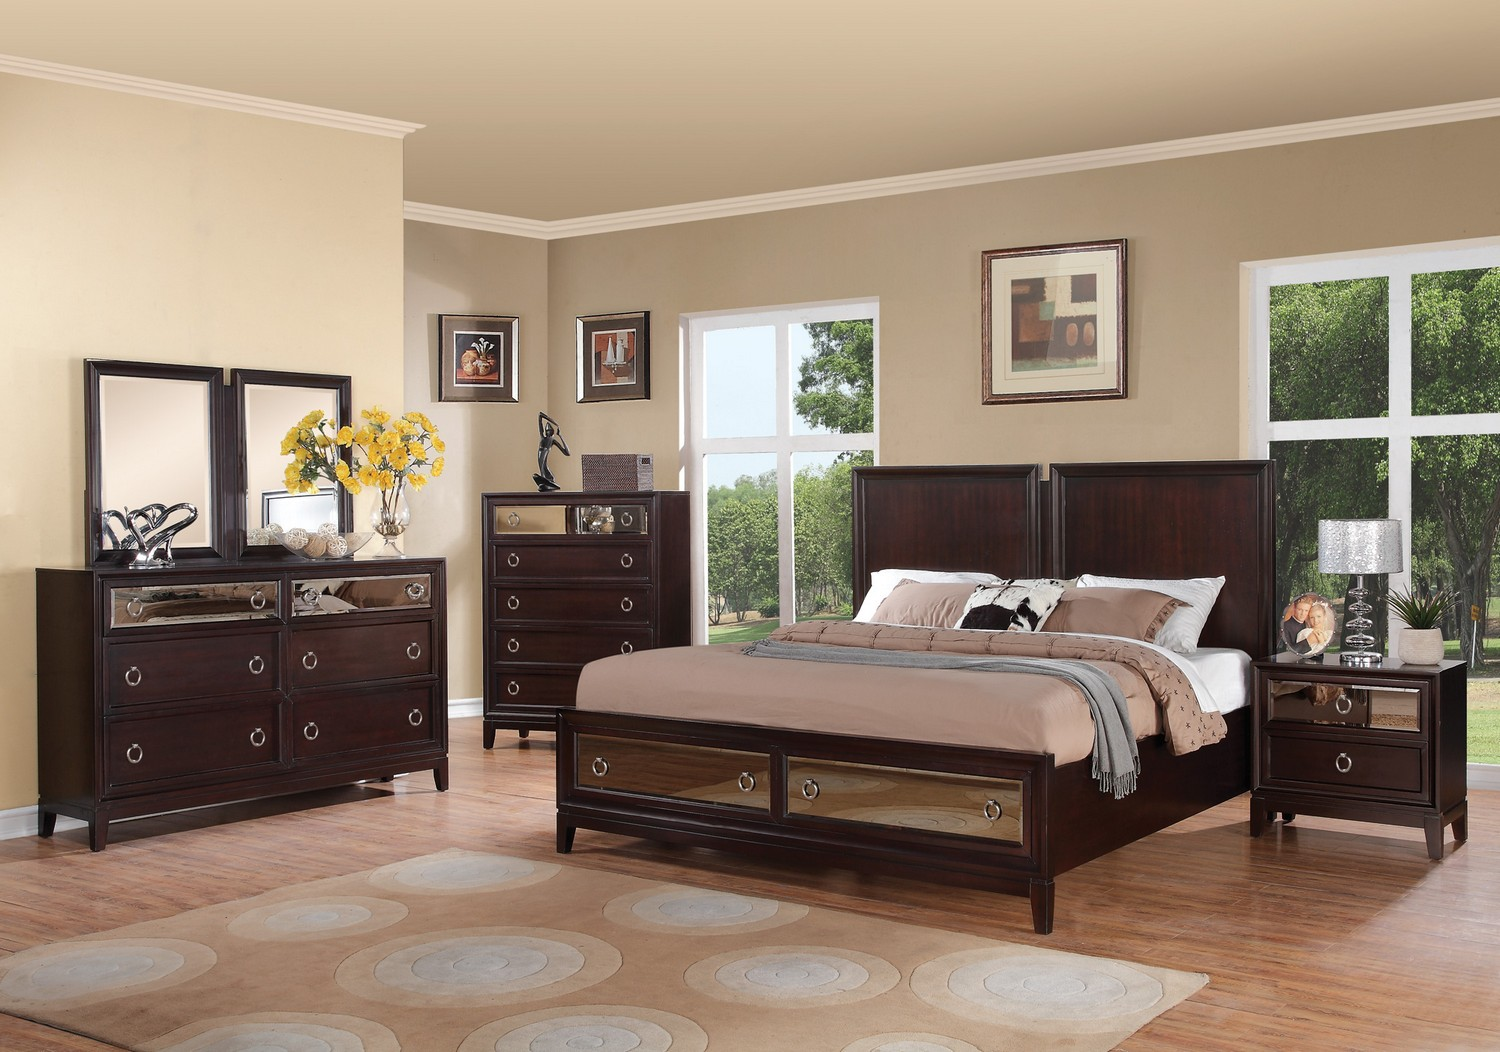 Coaster Williams Bedroom Collection - Cherry